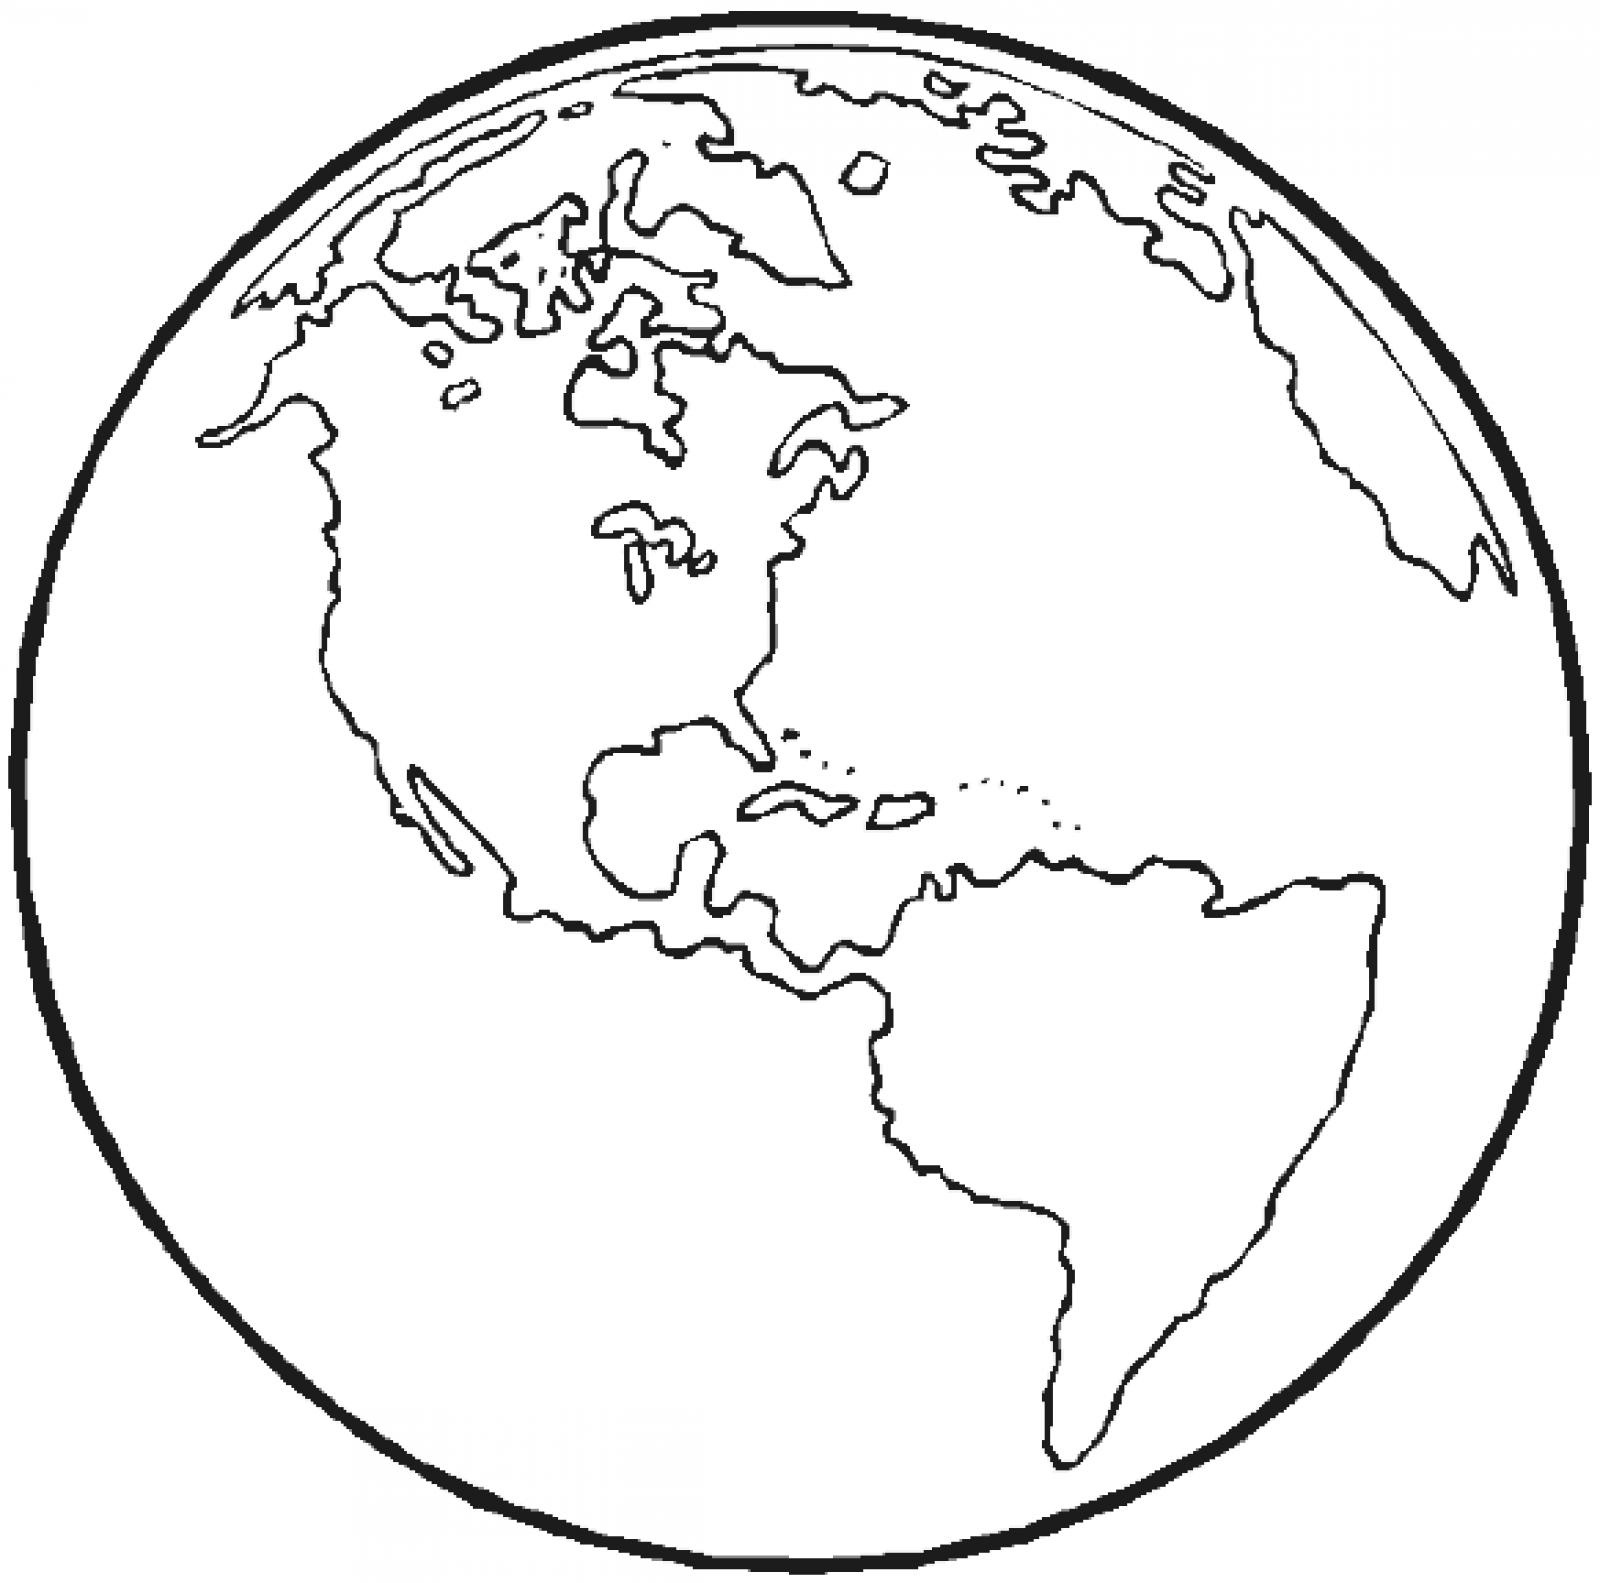 Coloring ~ Earth Coloring Sheet The Page Sun And Moon Planet Pages - Earth Coloring Pages Free Printable